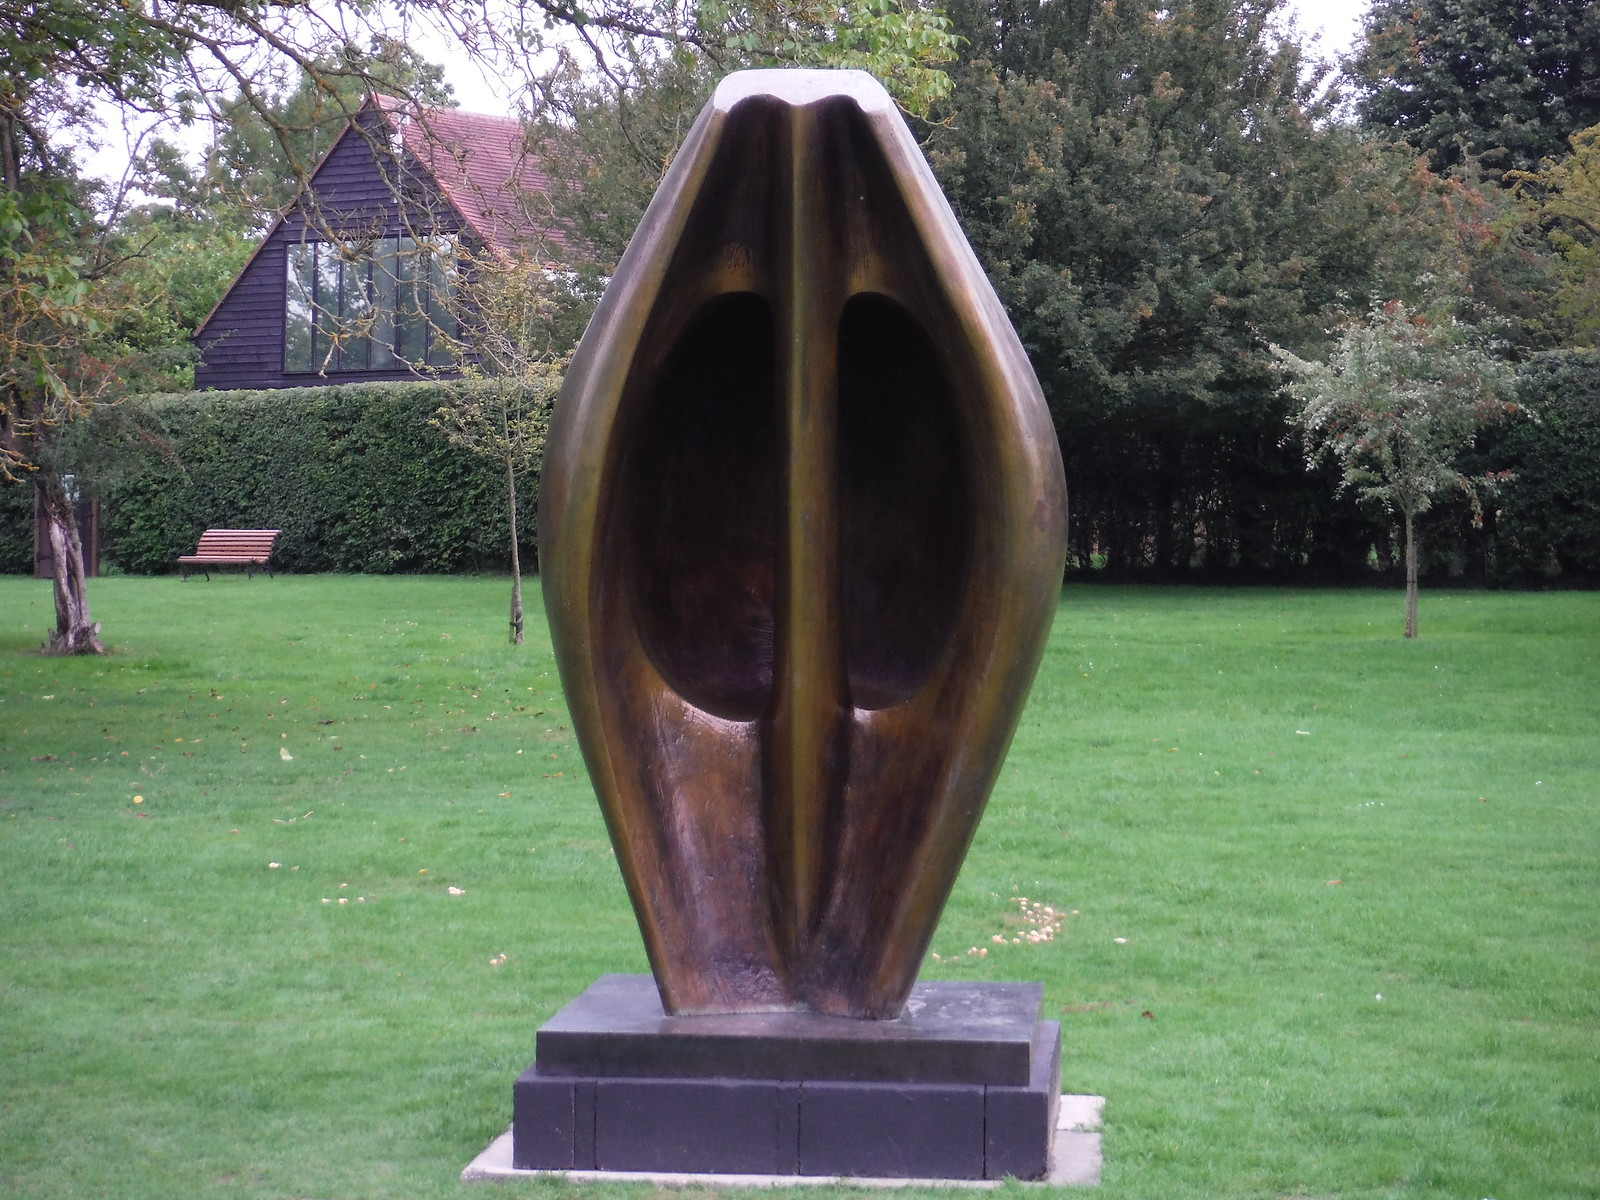 Large Totem Head (1968) SWC Walk 164 Roydon to Sawbridgeworth via Henry Moore Foundation